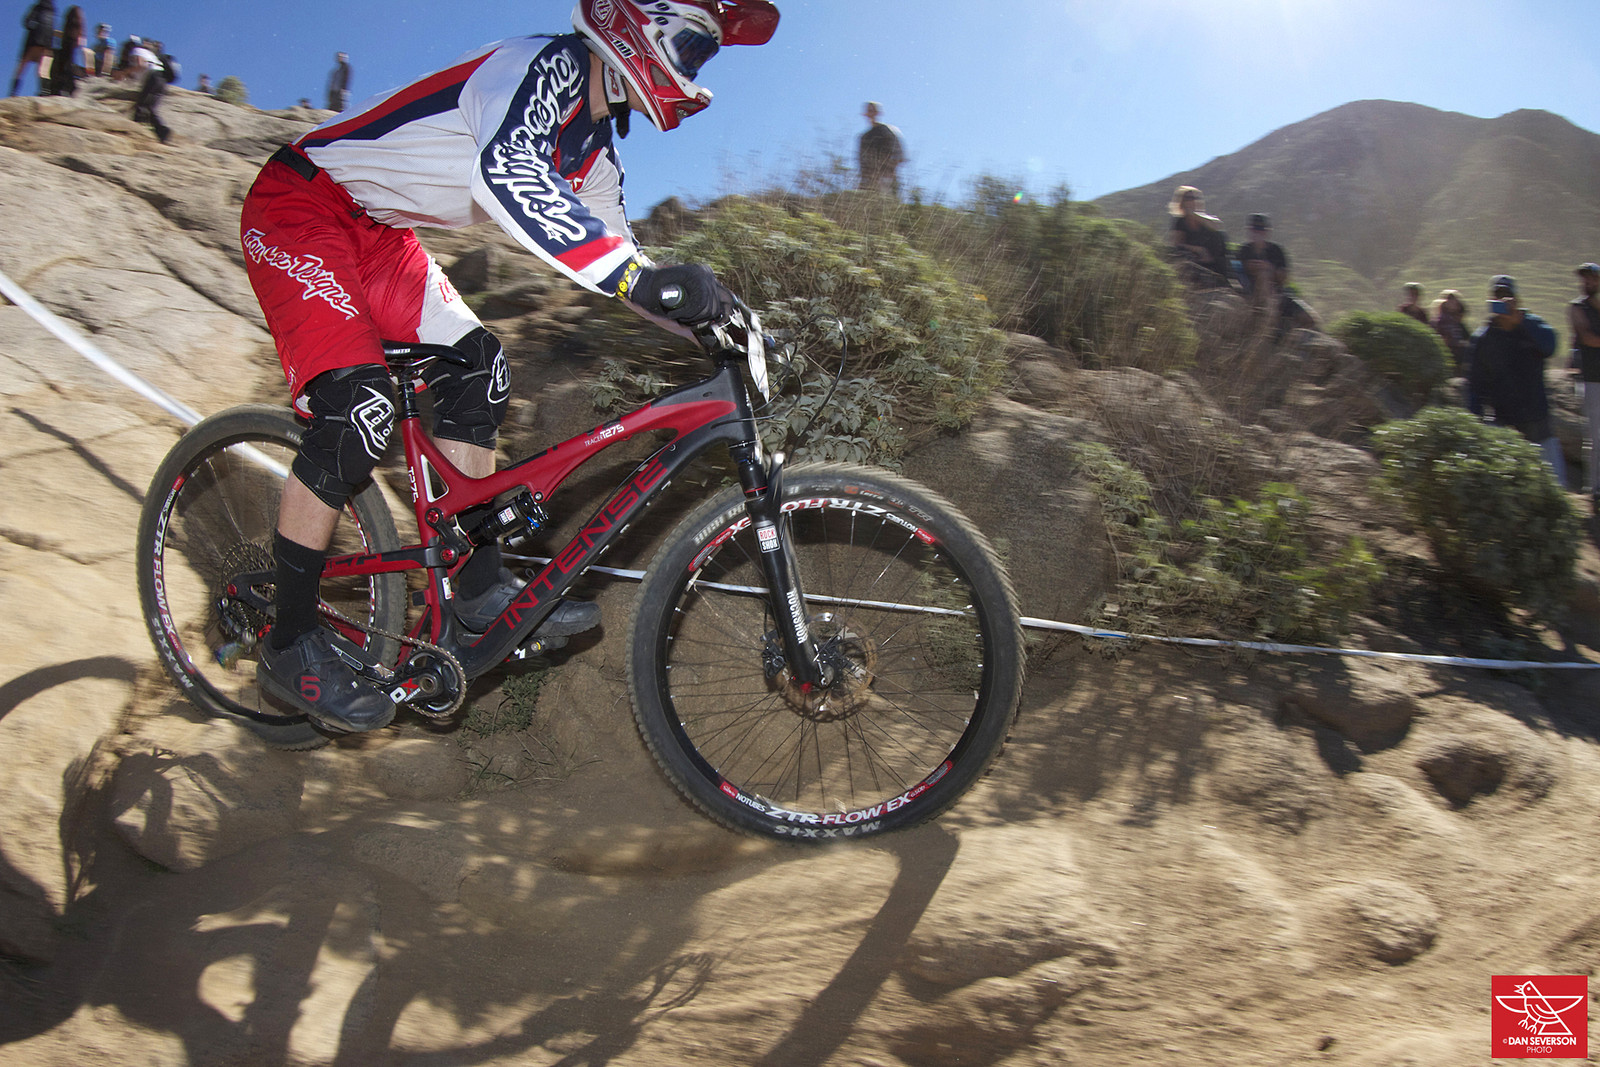 G-Out Project: Fontana 2015 - Intense Tracer 275 - danseverson photo - Mountain Biking Pictures - Vital MTB